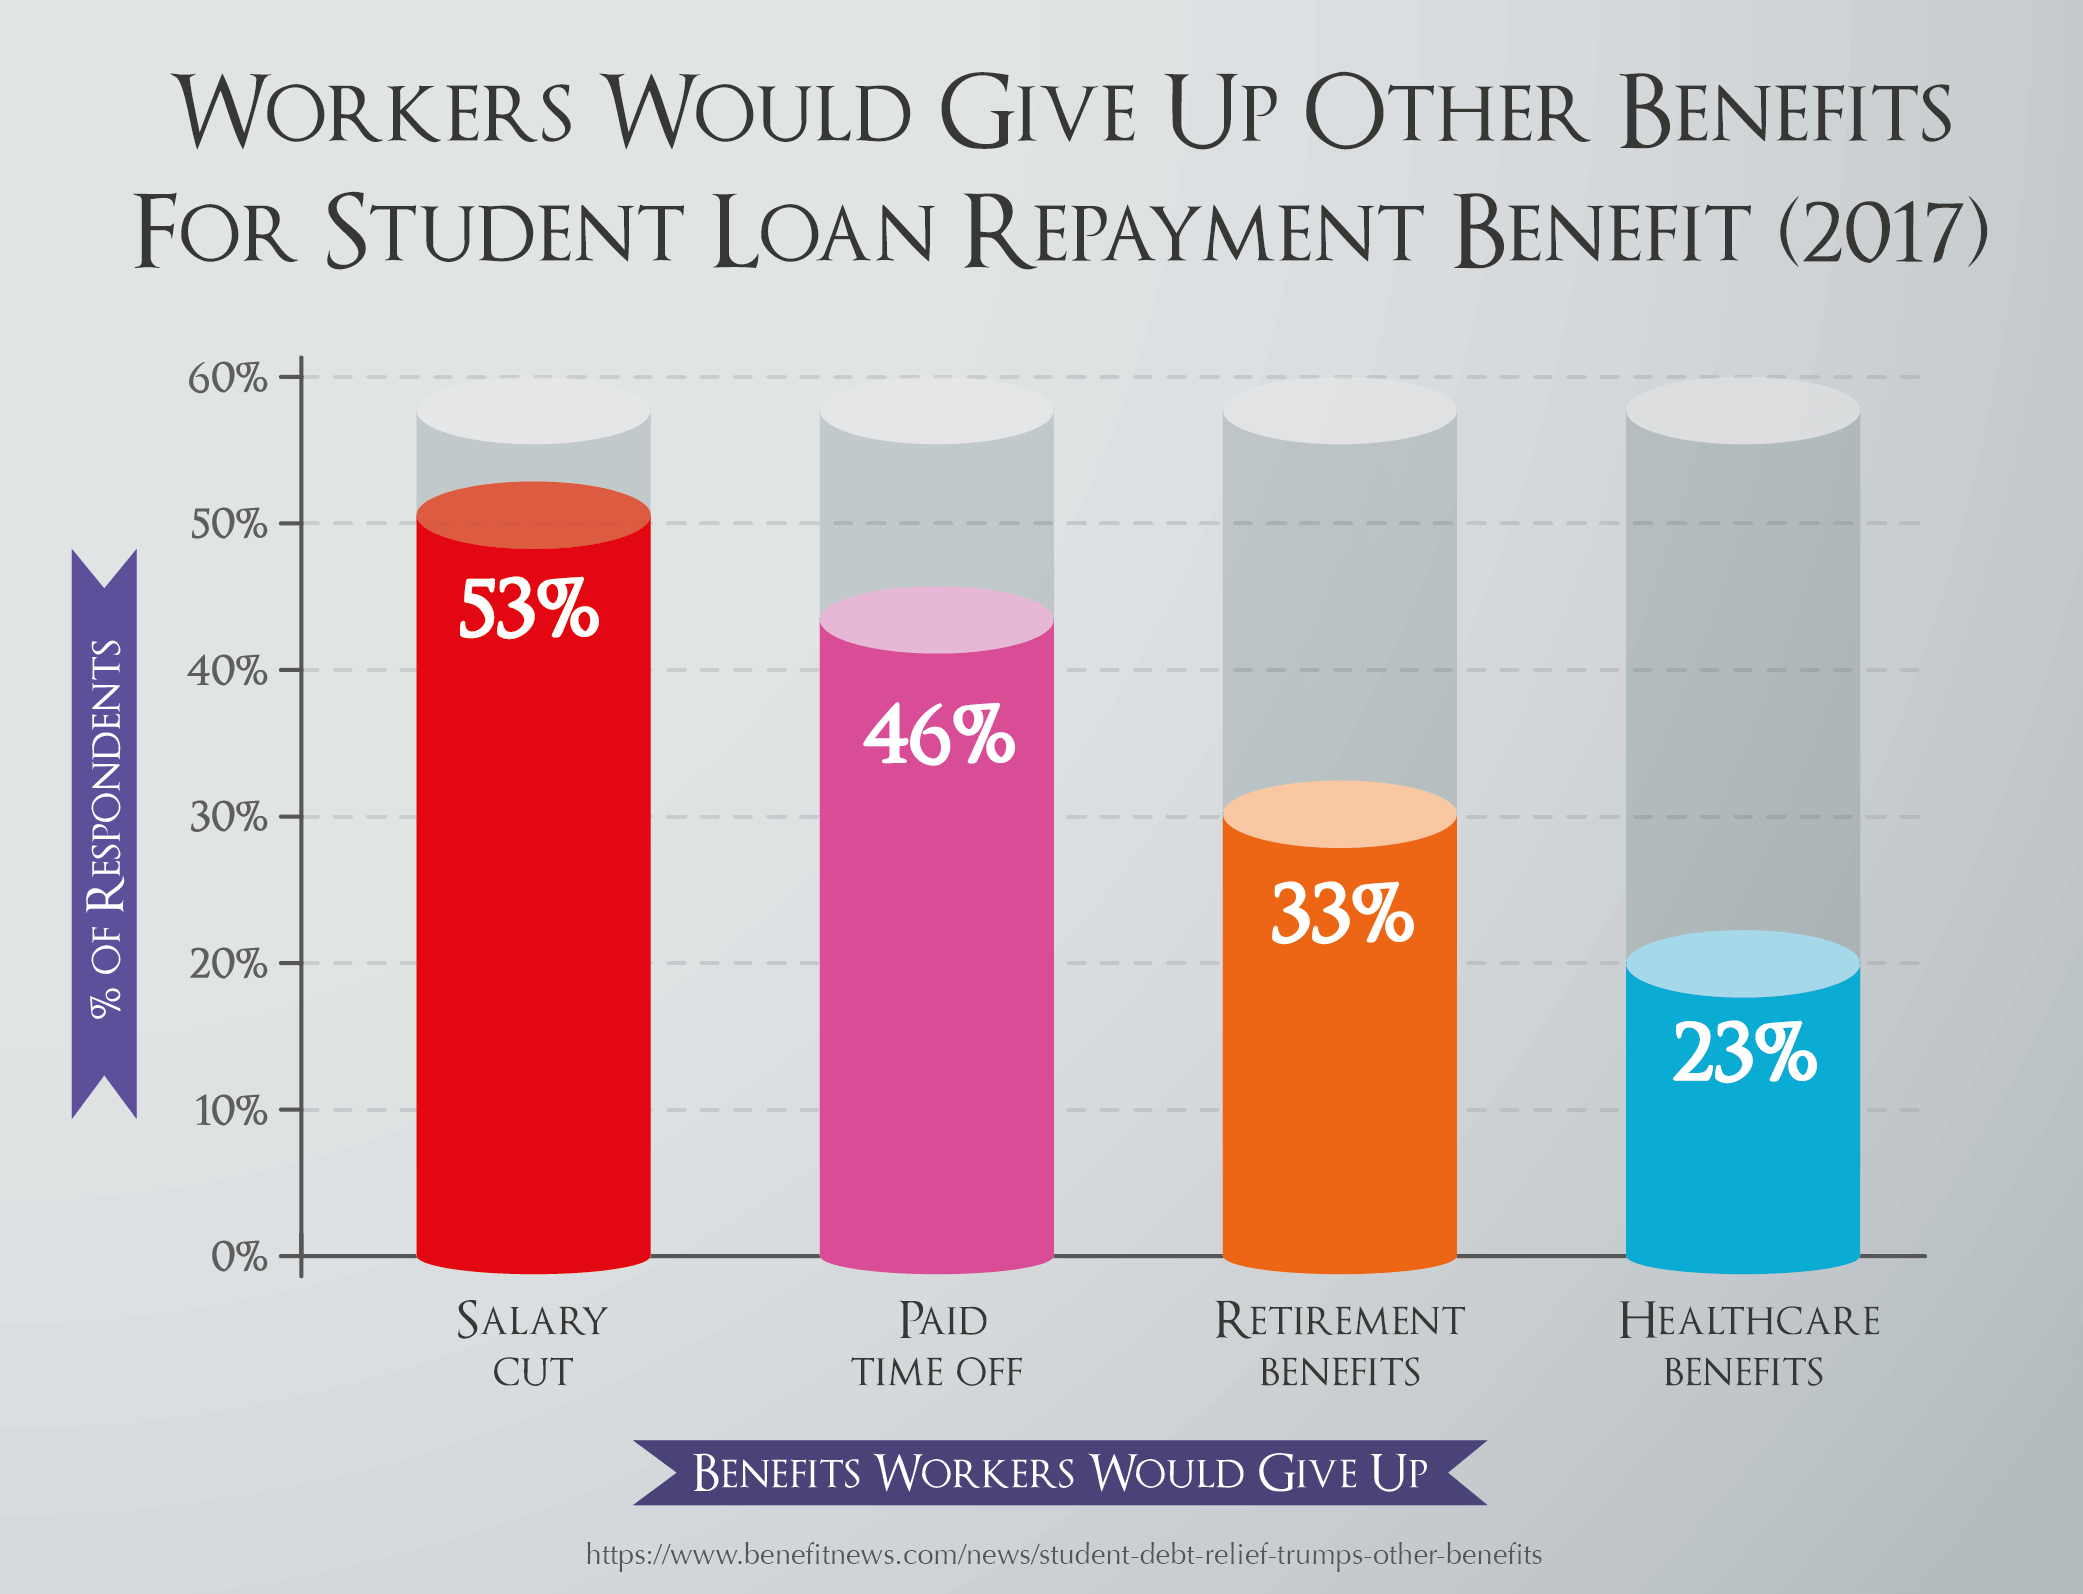 Workers Would Give Up Other Benefits For Student Loan Repayment Benefit (2017)